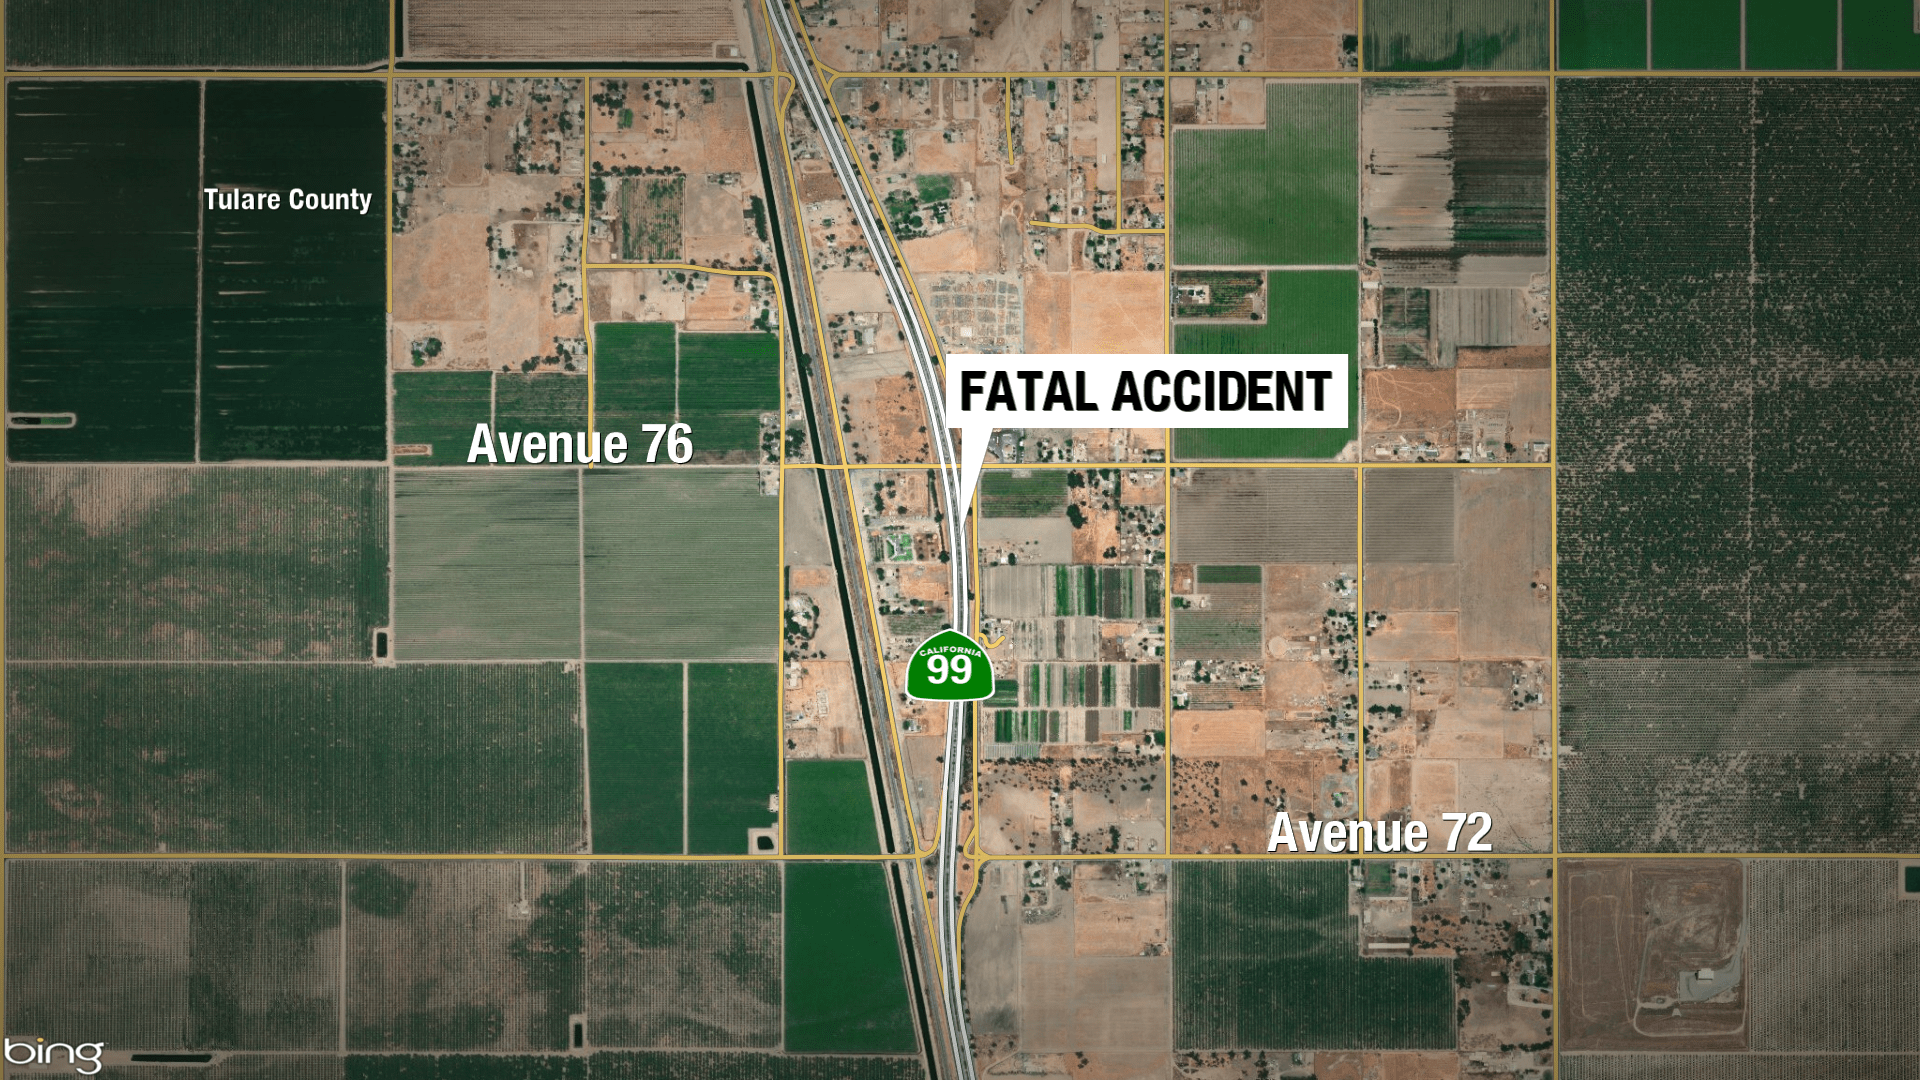 Map Of California Highway 99.Pedestrian Killed Crossing Highway 99 In Tulare County Chp Says